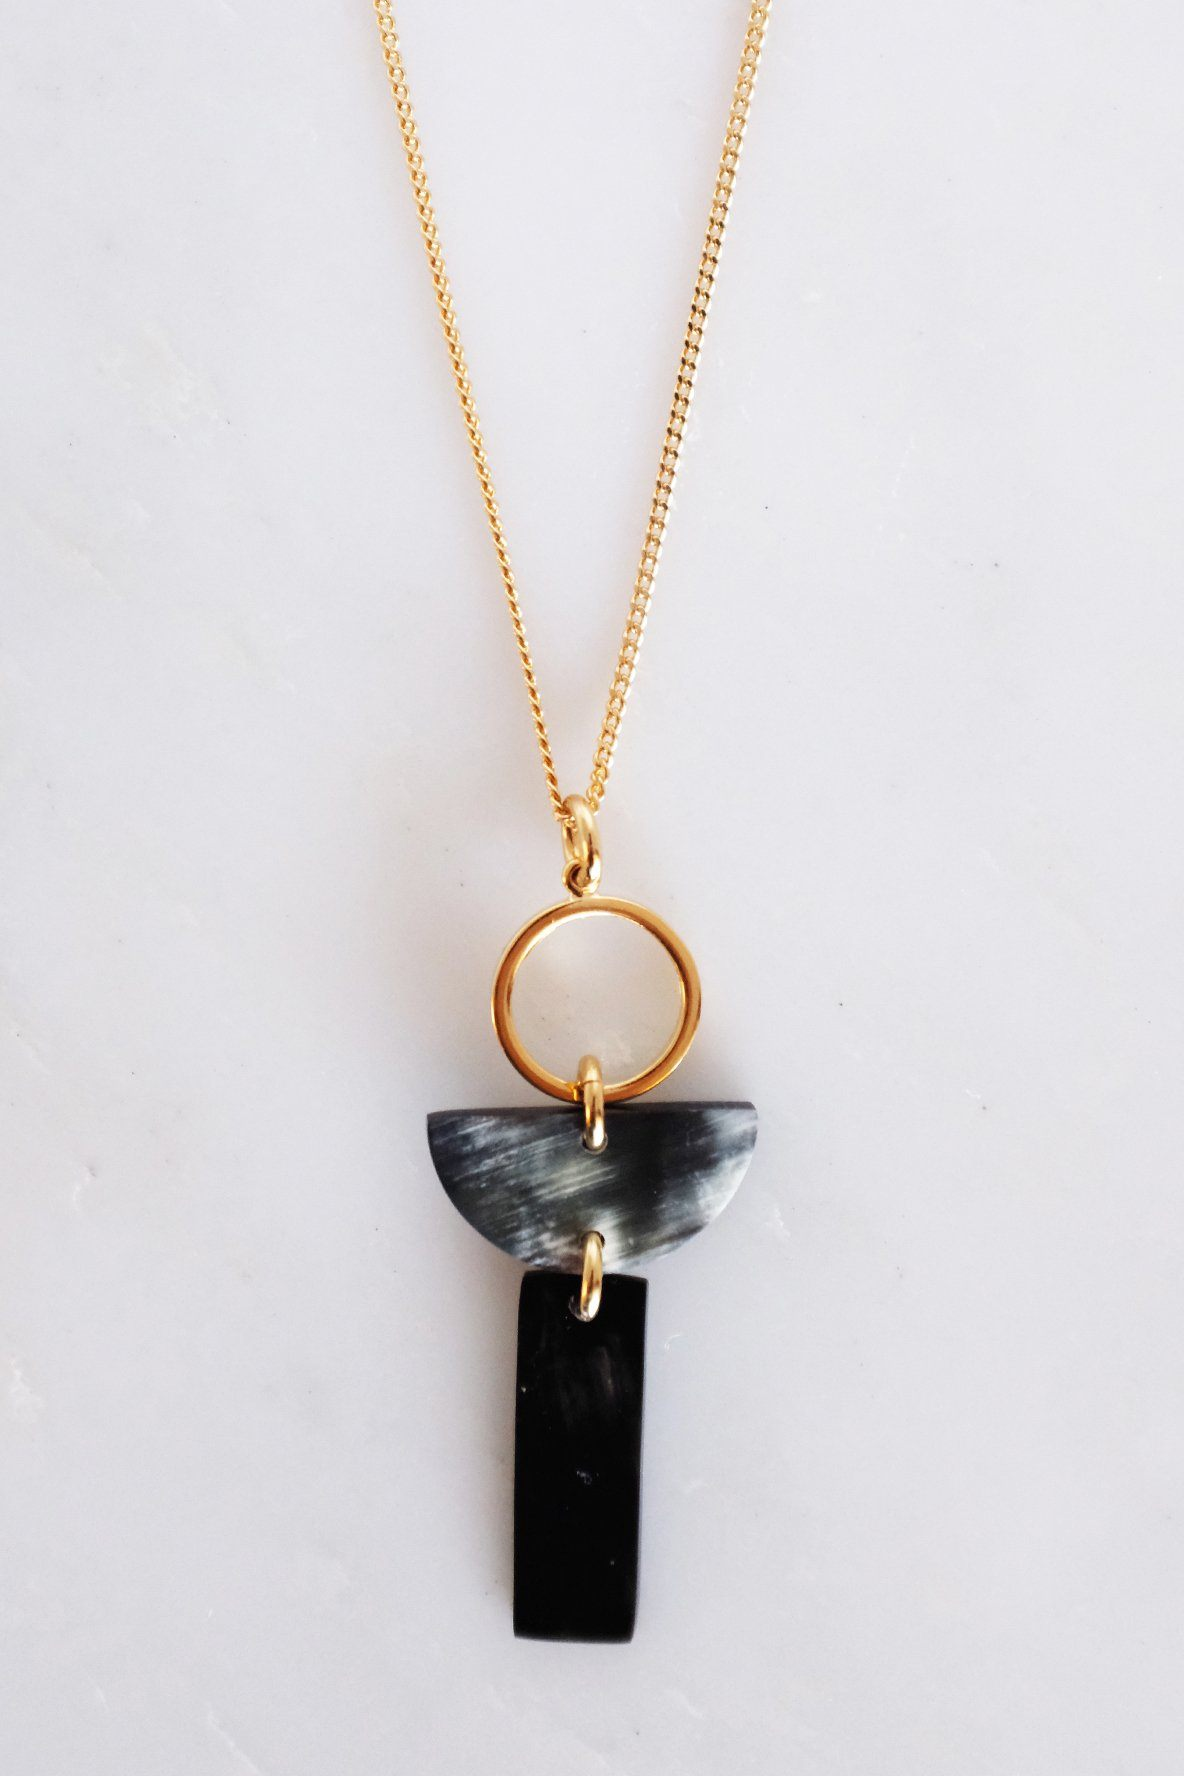 Con Dao II Geo Buffalo Horn Pendant Necklace - Handcrafted & Unique Buffalo Horn Jewelry